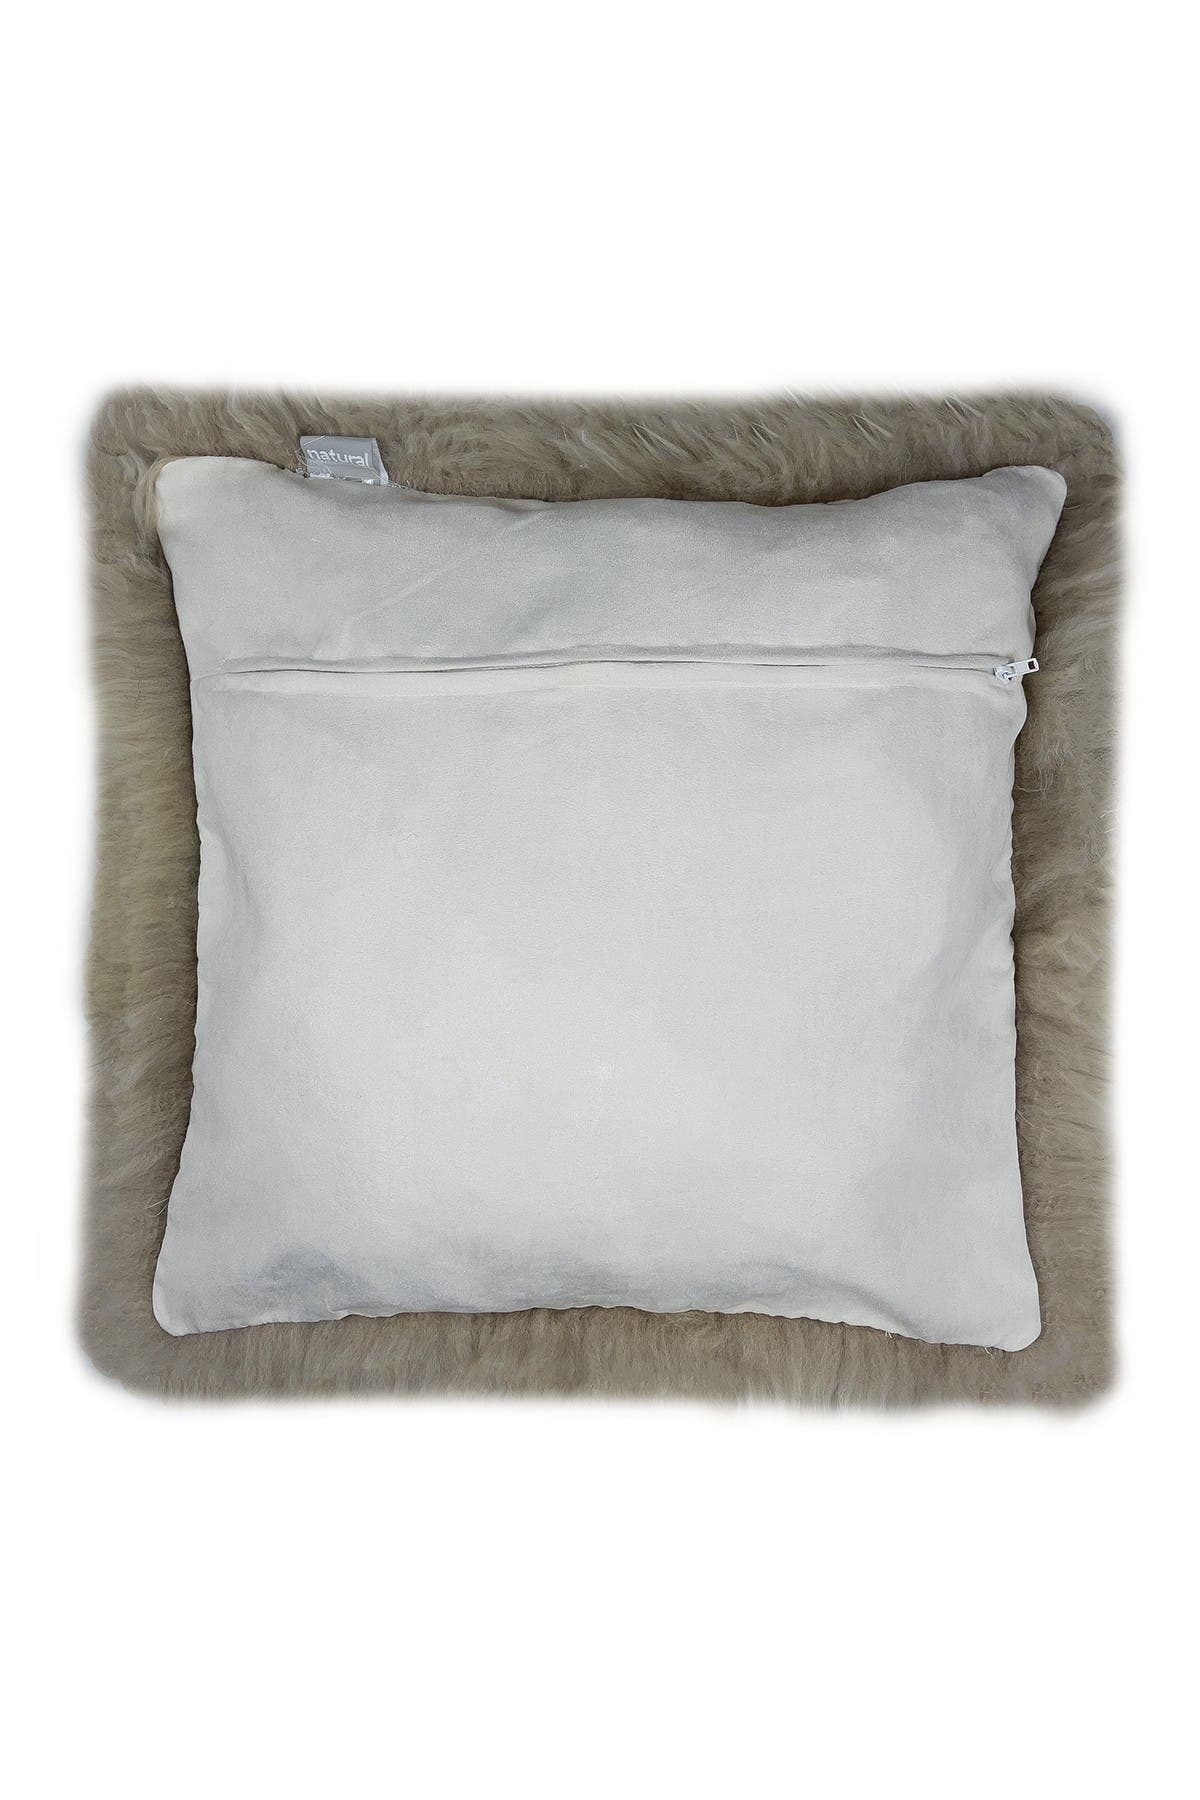 """Image of Natural New Zealand Genuine Sheepskin Pillow - 18"""" X 18"""" - Taupe - Set of 2"""